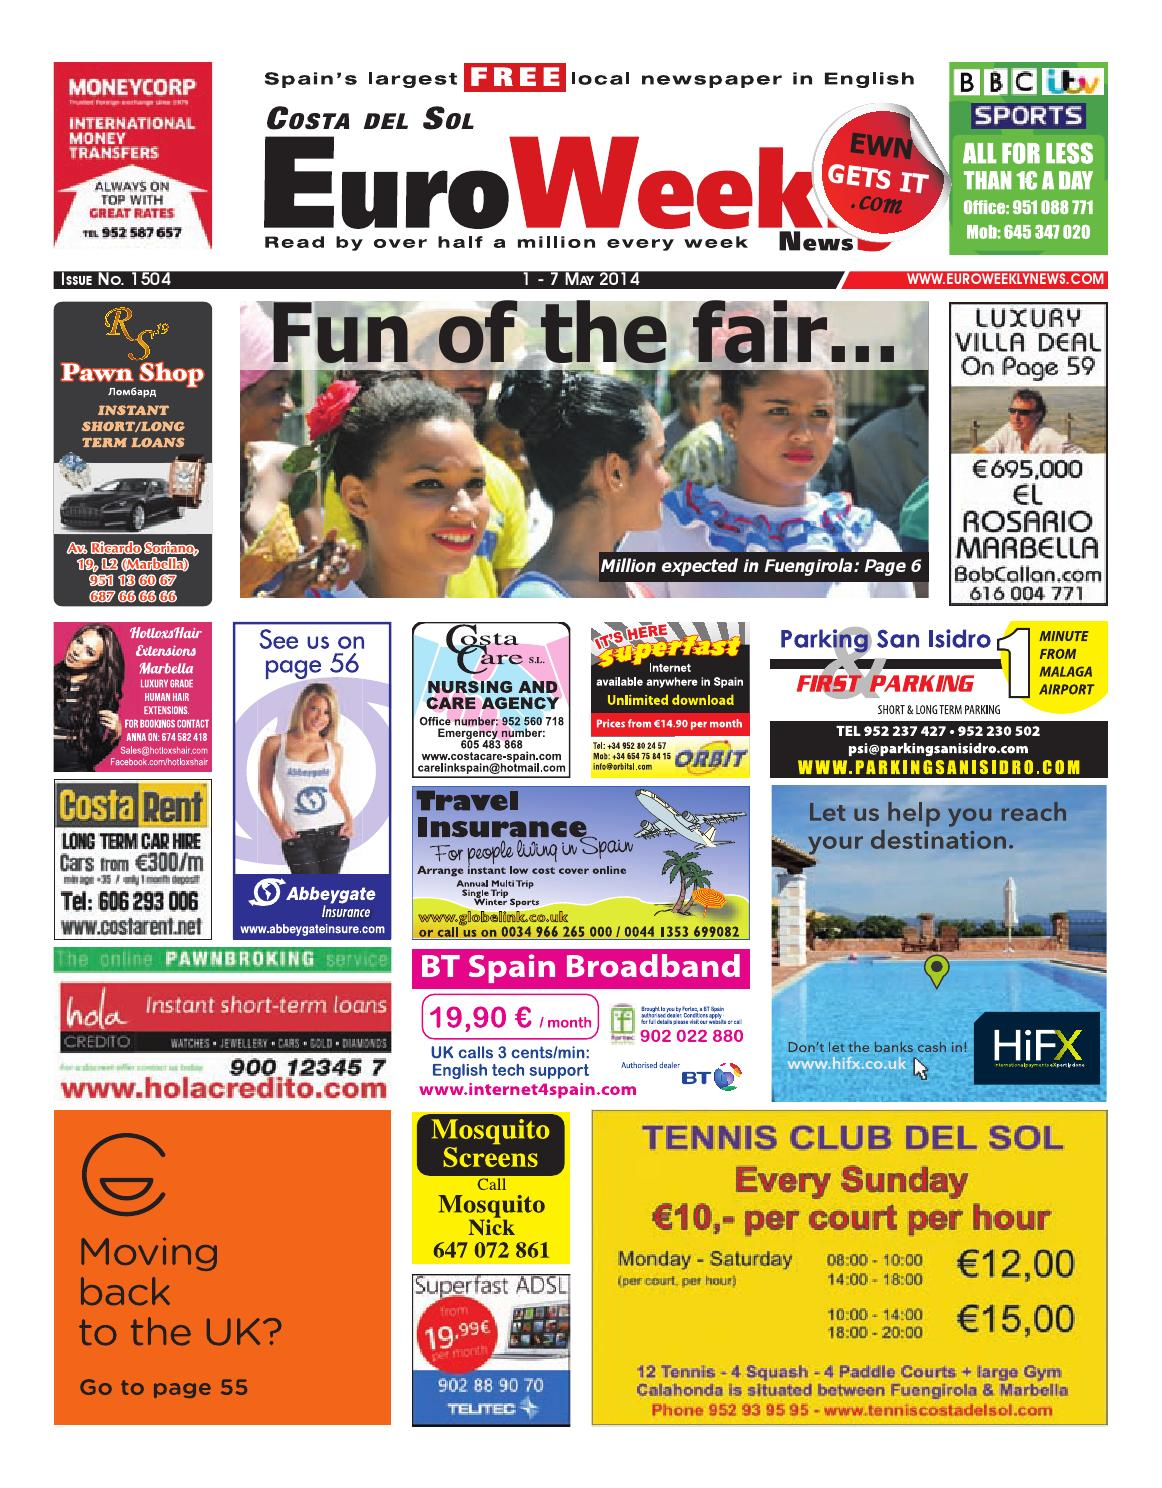 Euro Weekly News - Costa del Sol 1 - 7 May 2014 Issue 1504 by Euro Weekly  News Media S.A. - issuu 427cc9e0cf